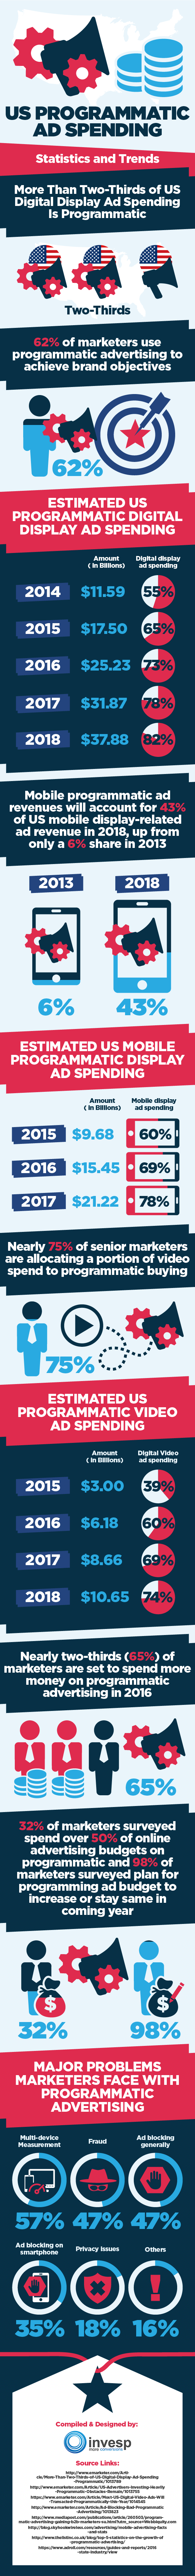 US Programmatic Ad Spending – Statistics and Trends #Infographic